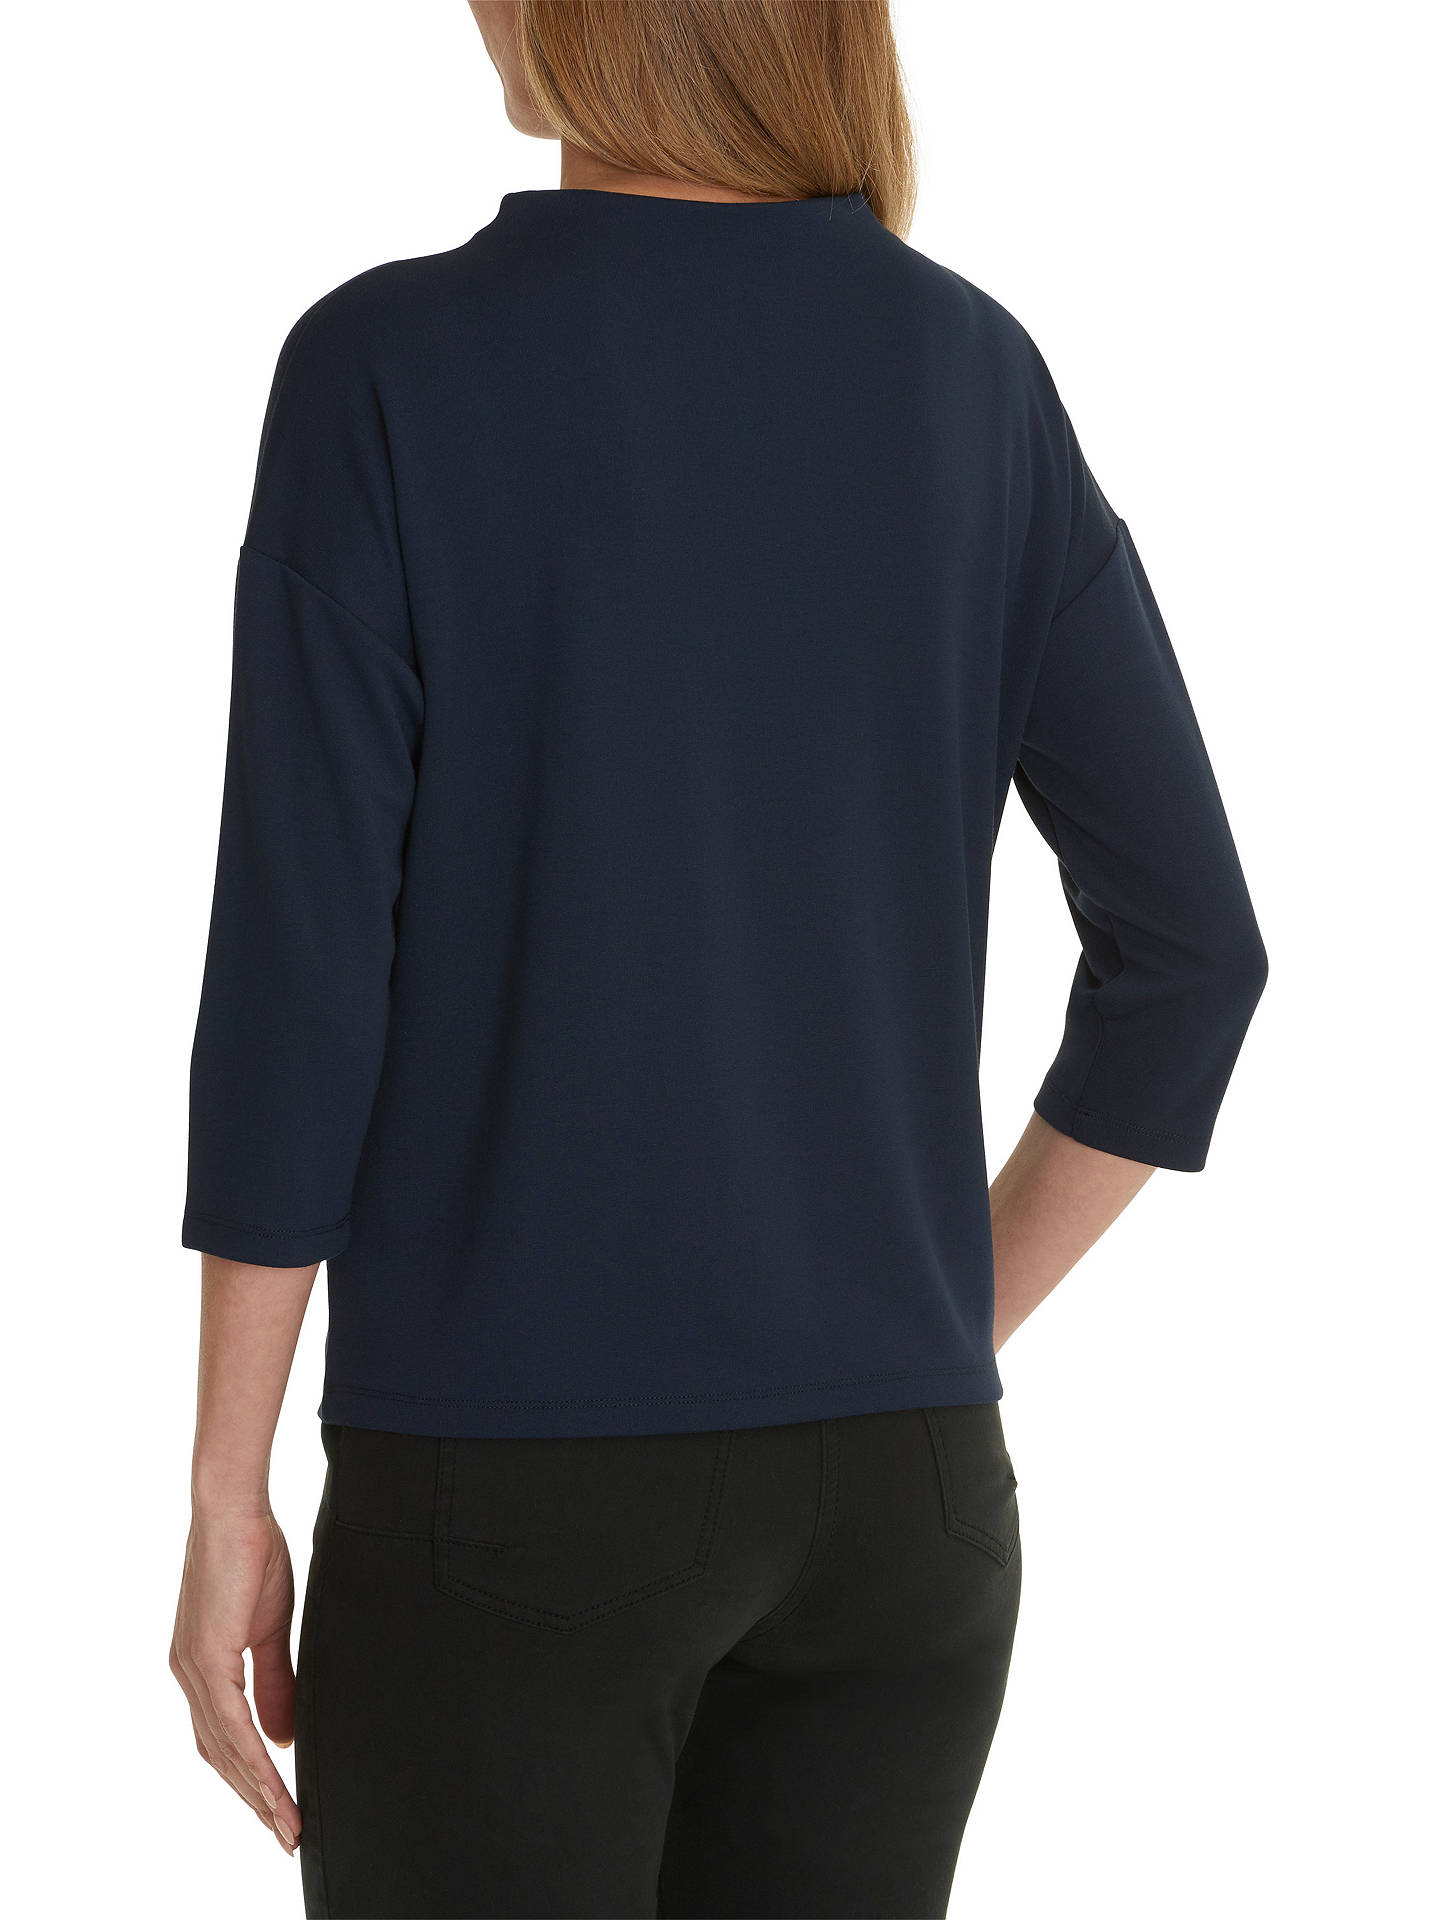 Buy Betty Barclay Embellished Jumper, Dark Blue/Multi, 8 Online at johnlewis.com